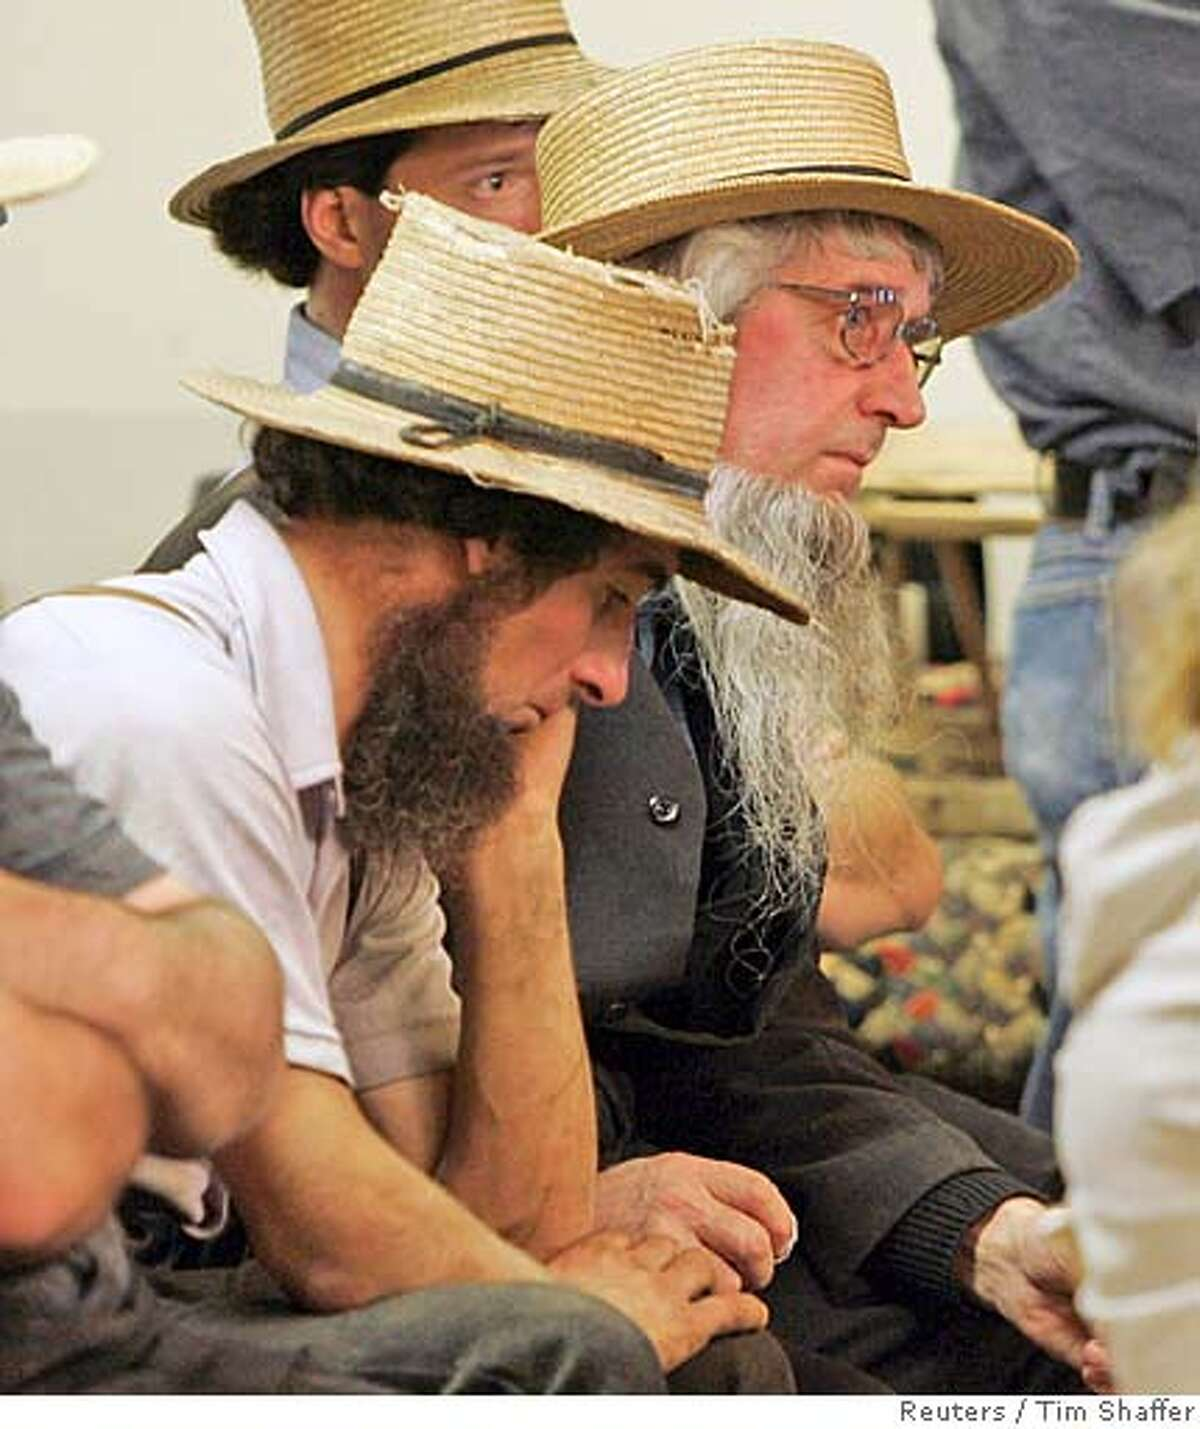 A group of Amish men react as Cmdr Jeffrey Miller (not shown) comments on the shooting at the Georgetown School in the town of Nickel Mines near Lancaster, Pennsylvania October 2, 2006. Gunman Charles Carl Roberts opened fire in the school killing three girls and wounding seven others before turning the weapon on himself, police said. REUTERS/Tim Shaffer (UNITED STATES)